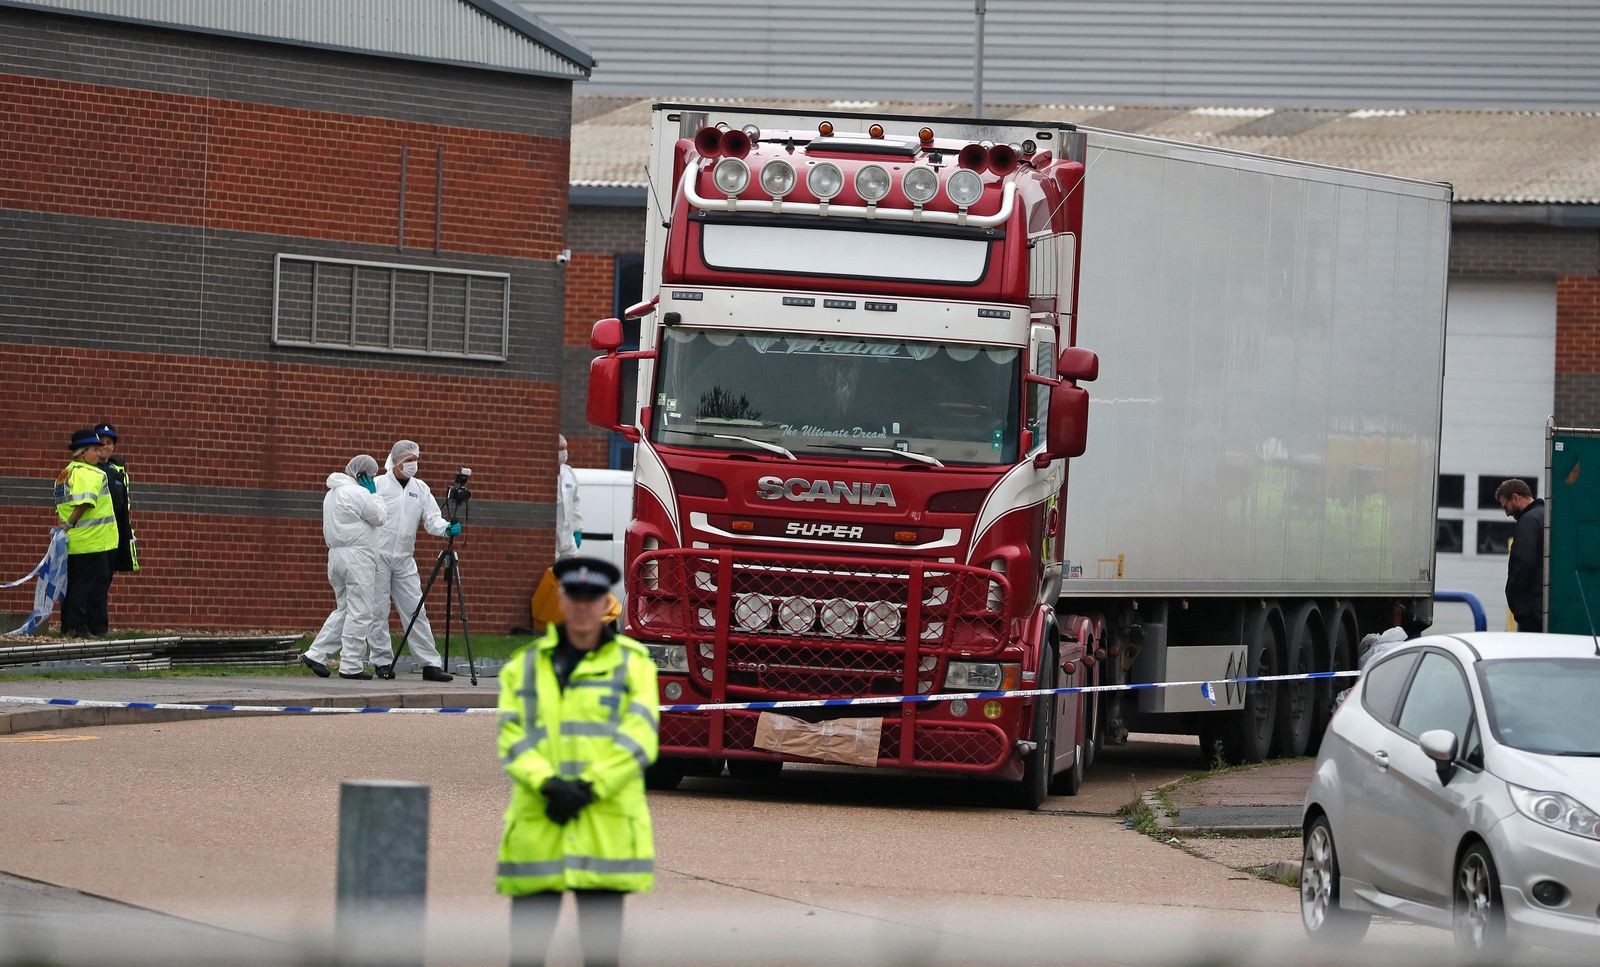 FILE - In this Oct. 23, 2019, file photo, police forensic officers attend the scene after a truck was found to contain a large number of dead bodies, in Thurrock, South England.{ } (AP Photo/Alastair Grant, File)